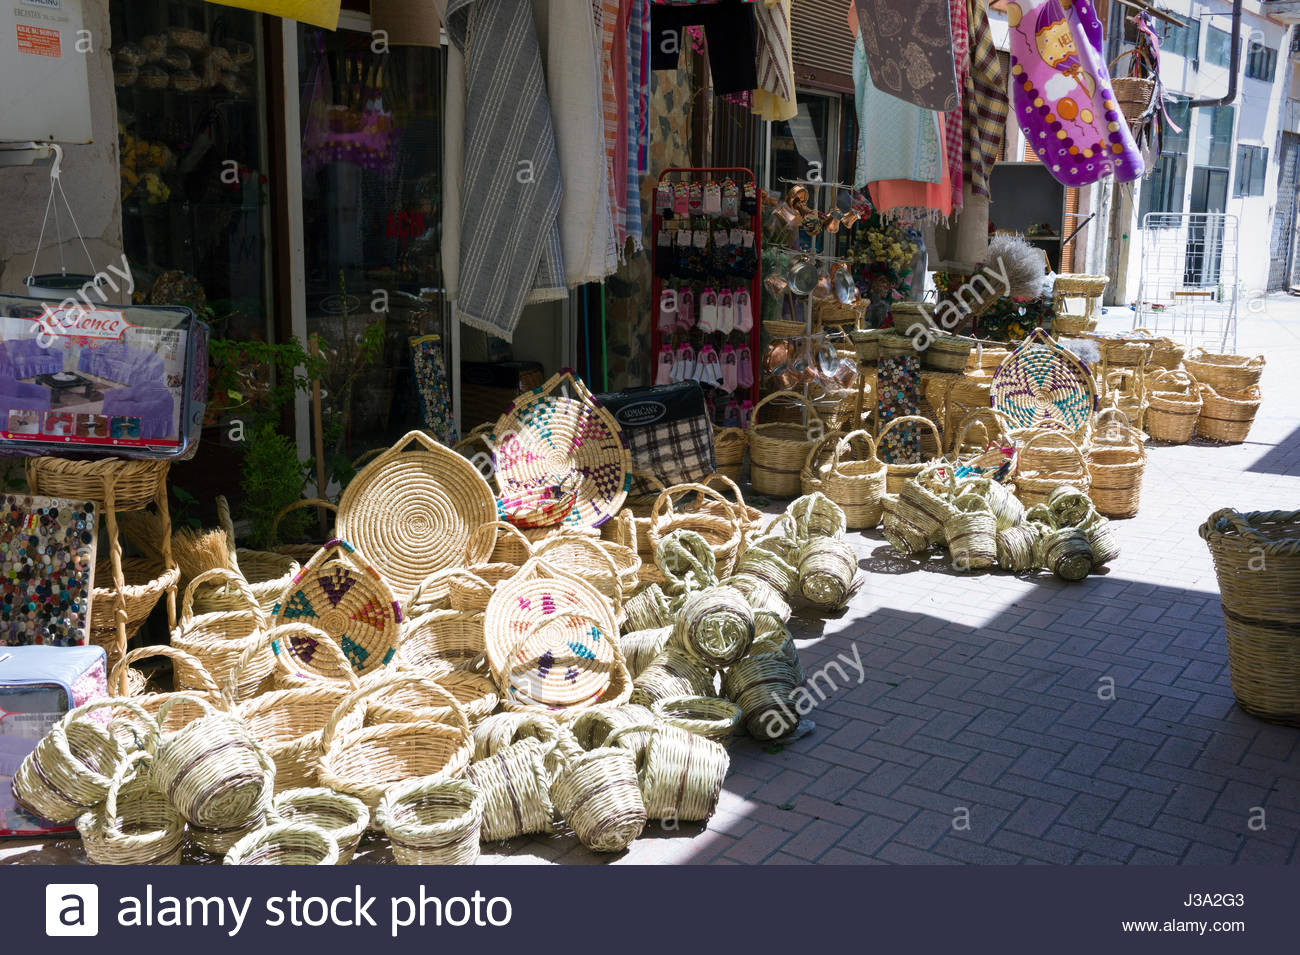 Wicker baskets on sale in a traditional street market in the Turkish quarter, Nicosia, Cyprus - Stock Image